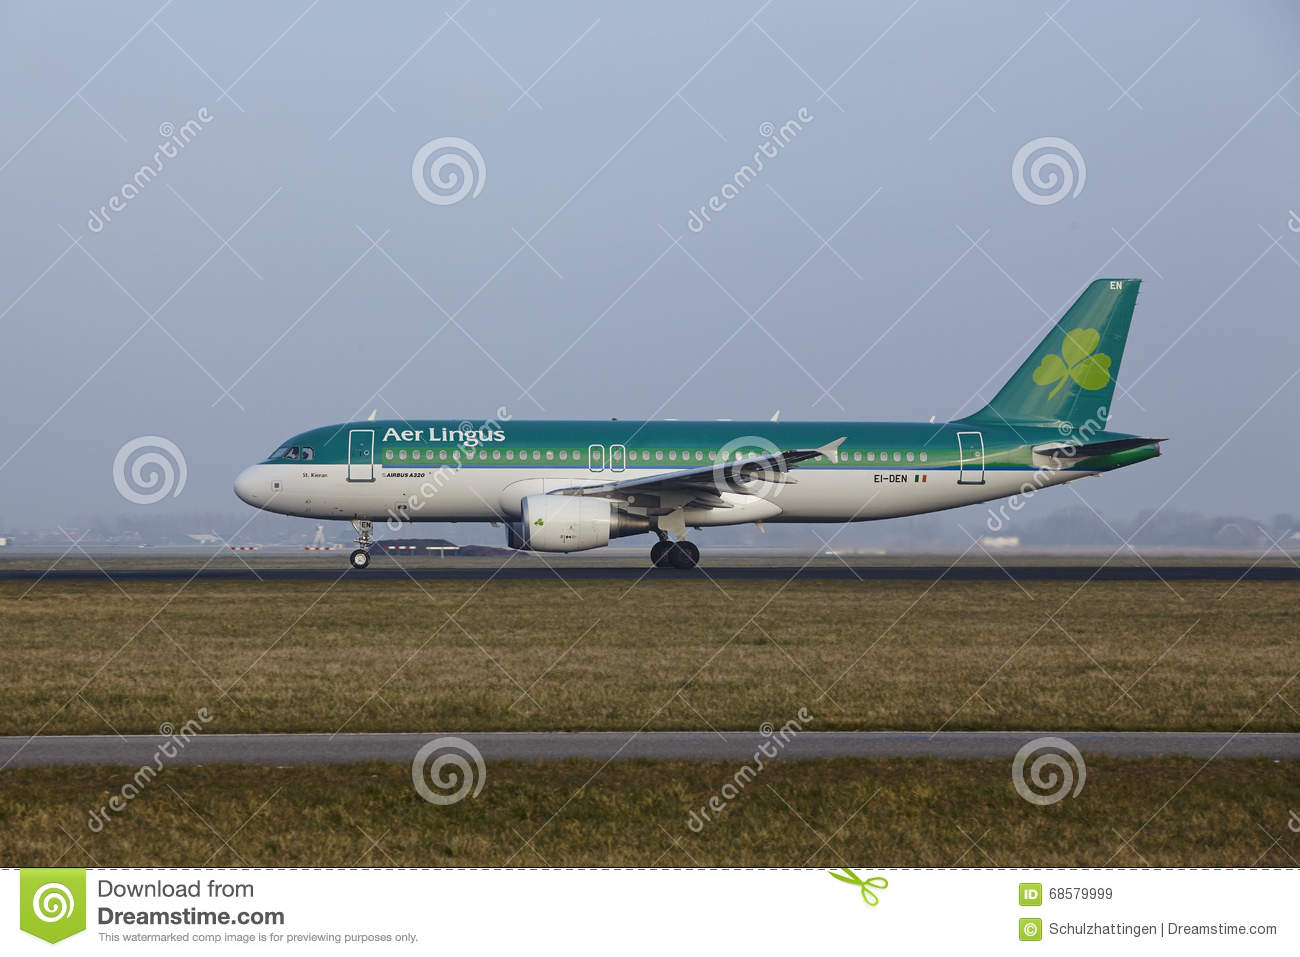 Amsterdam Airport Schiphol - Airbus 320 of Aer Lingus takes off